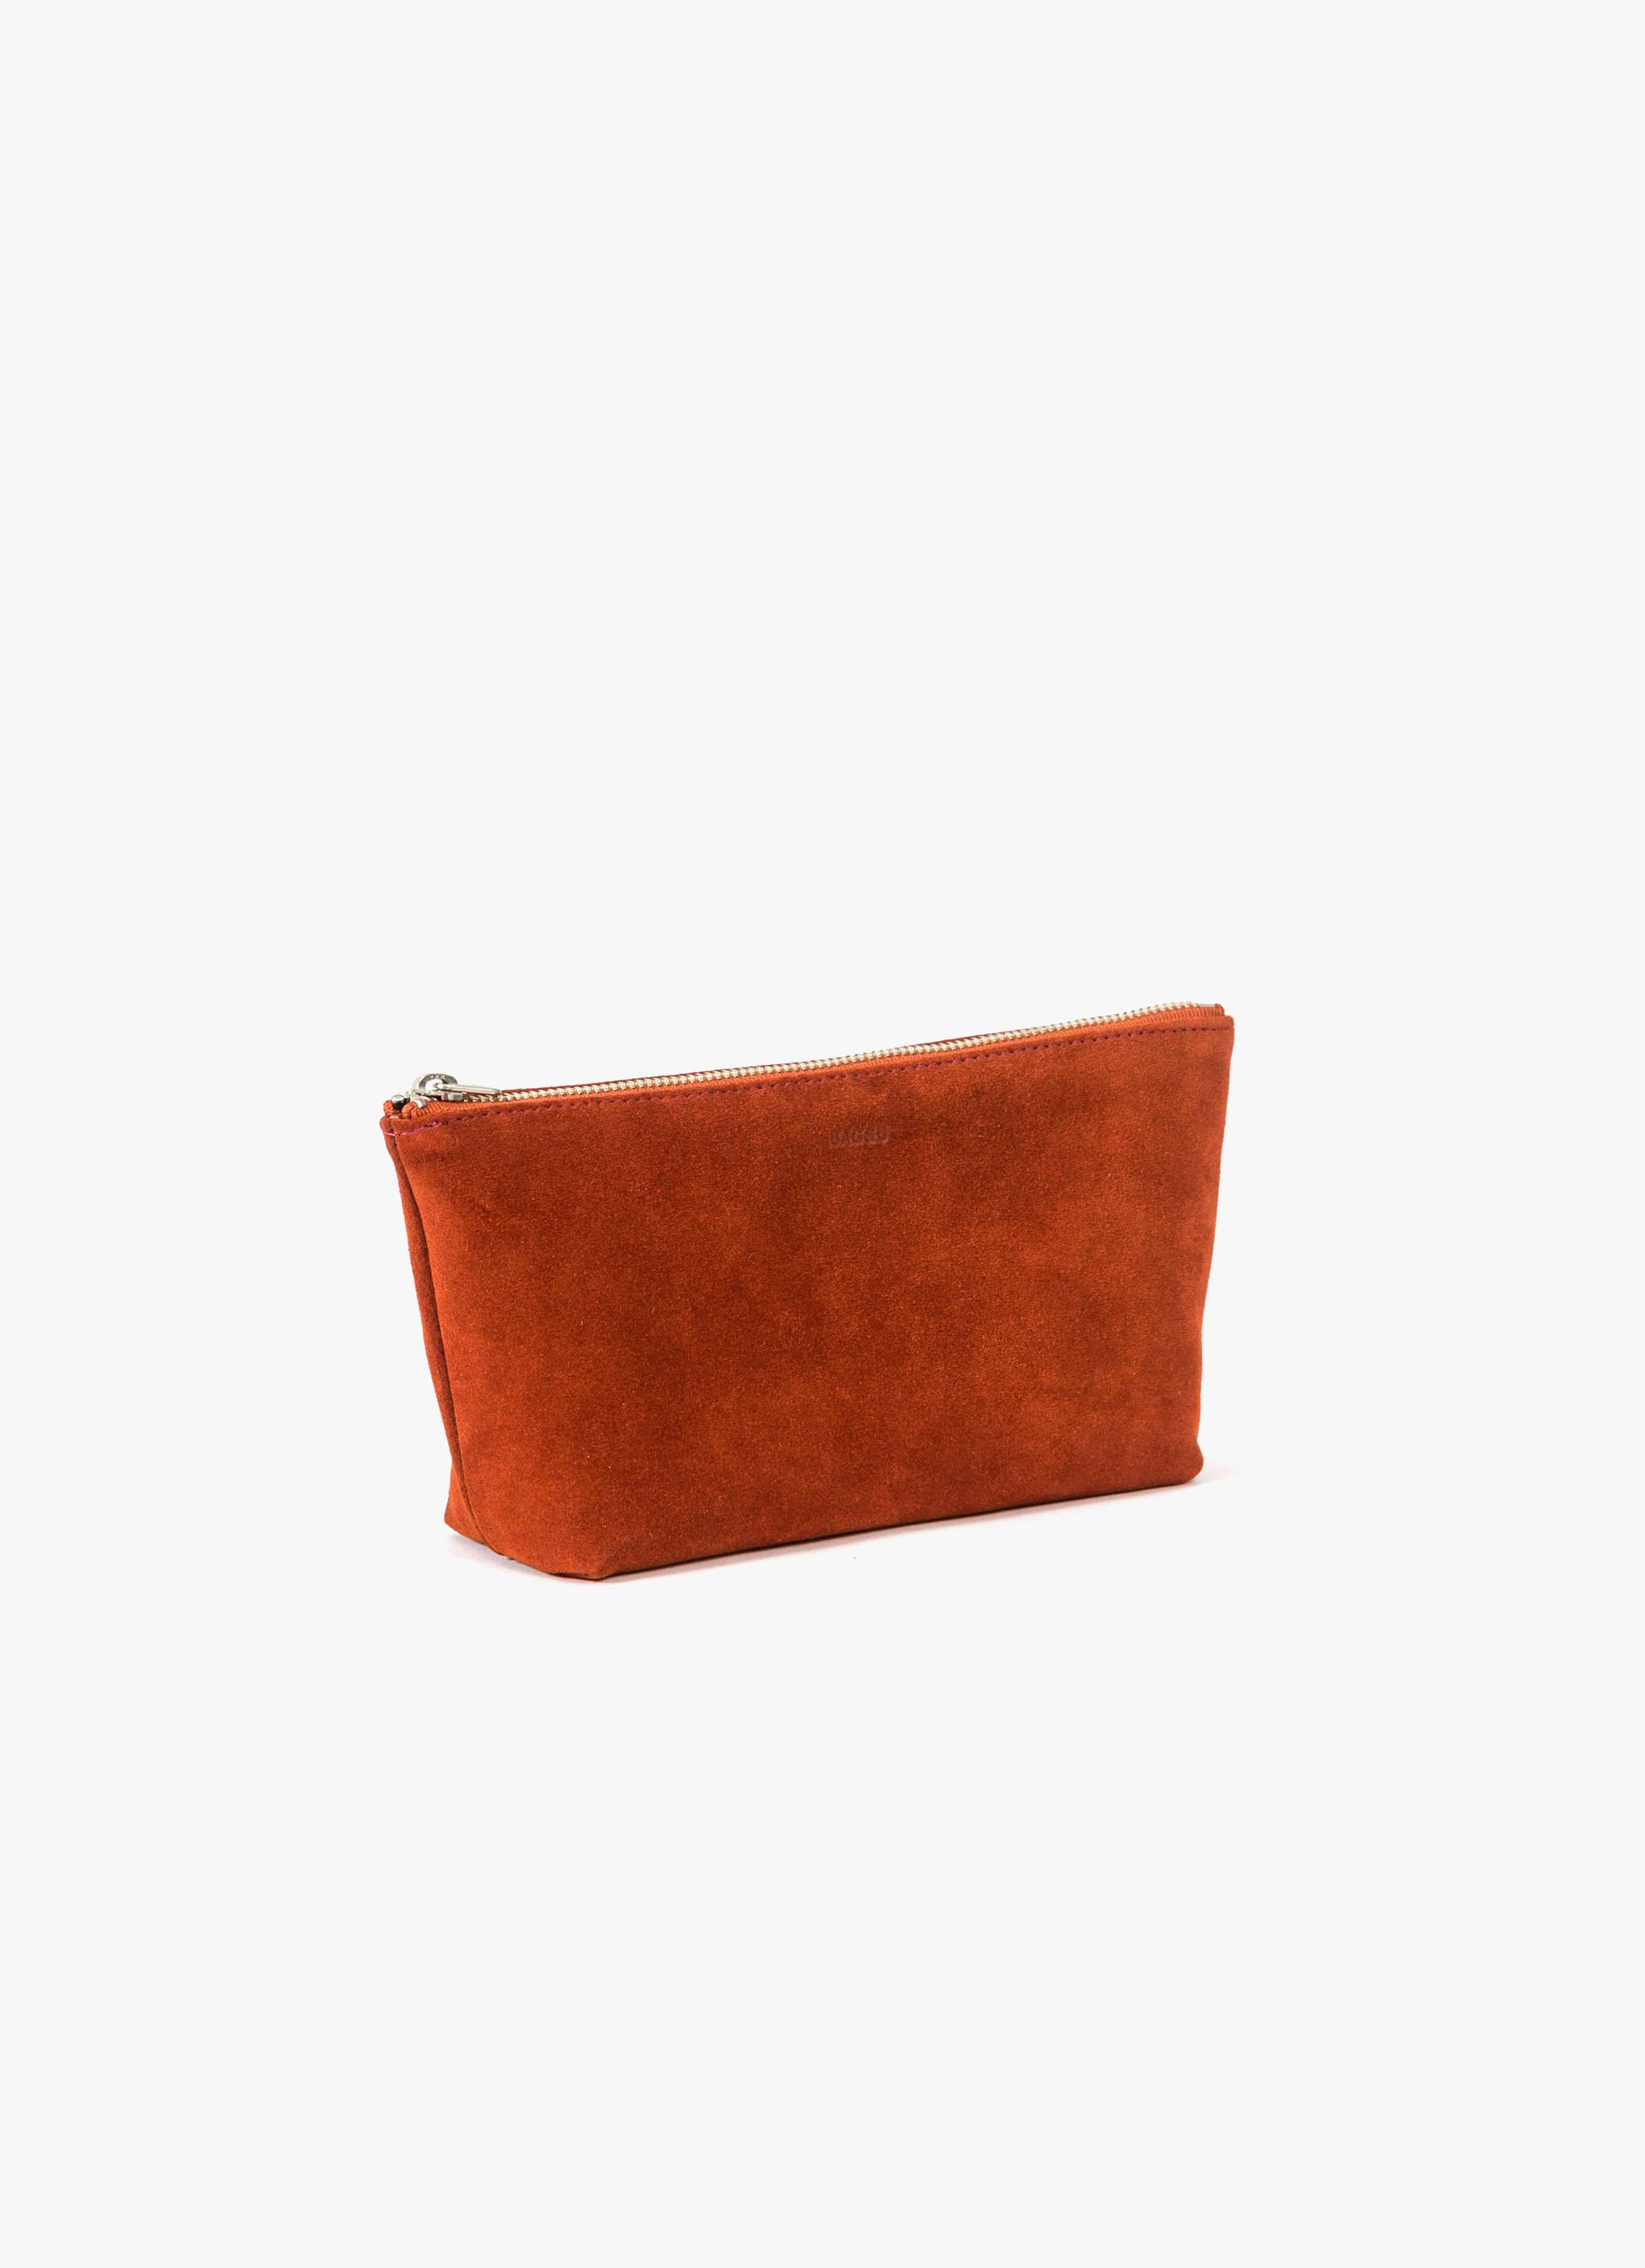 Baggu Leather Pouch - Rust Suede - Small